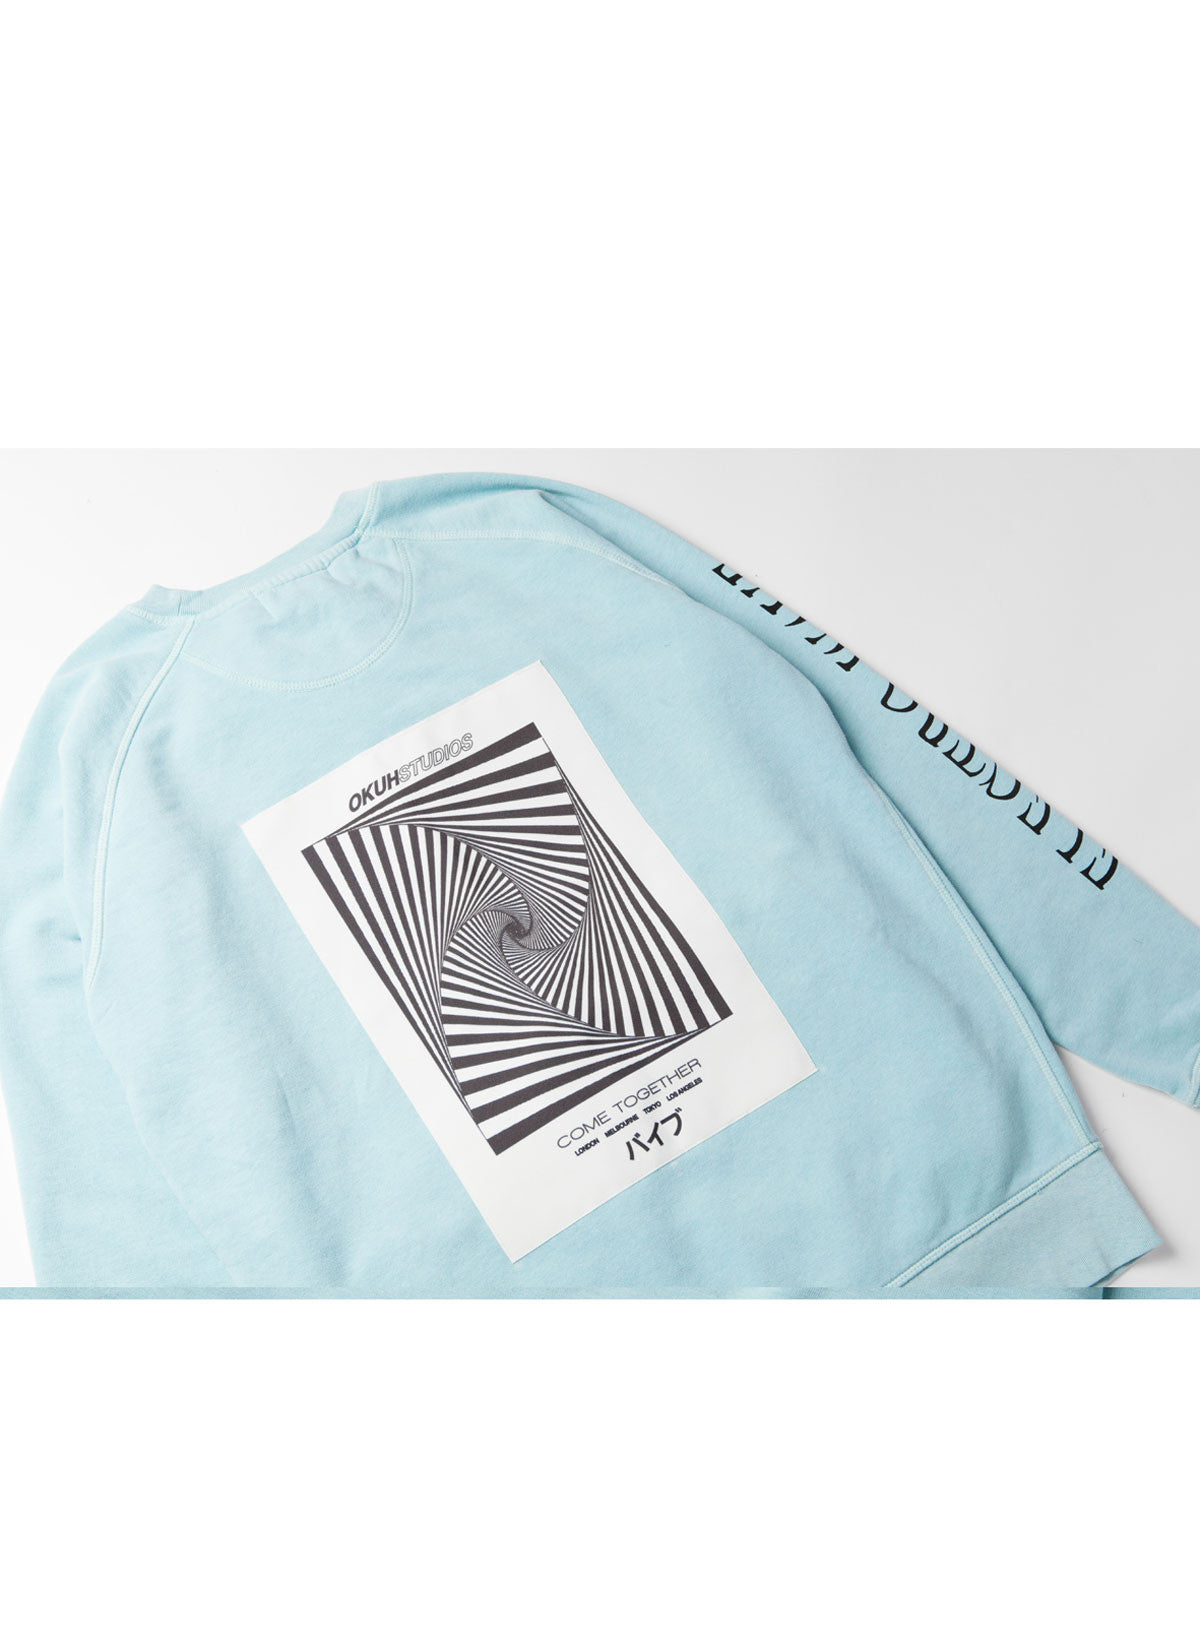 Electrowave Blue Sweatshirt by Okuh Studios, mens streetwear fashion brand, Back close up